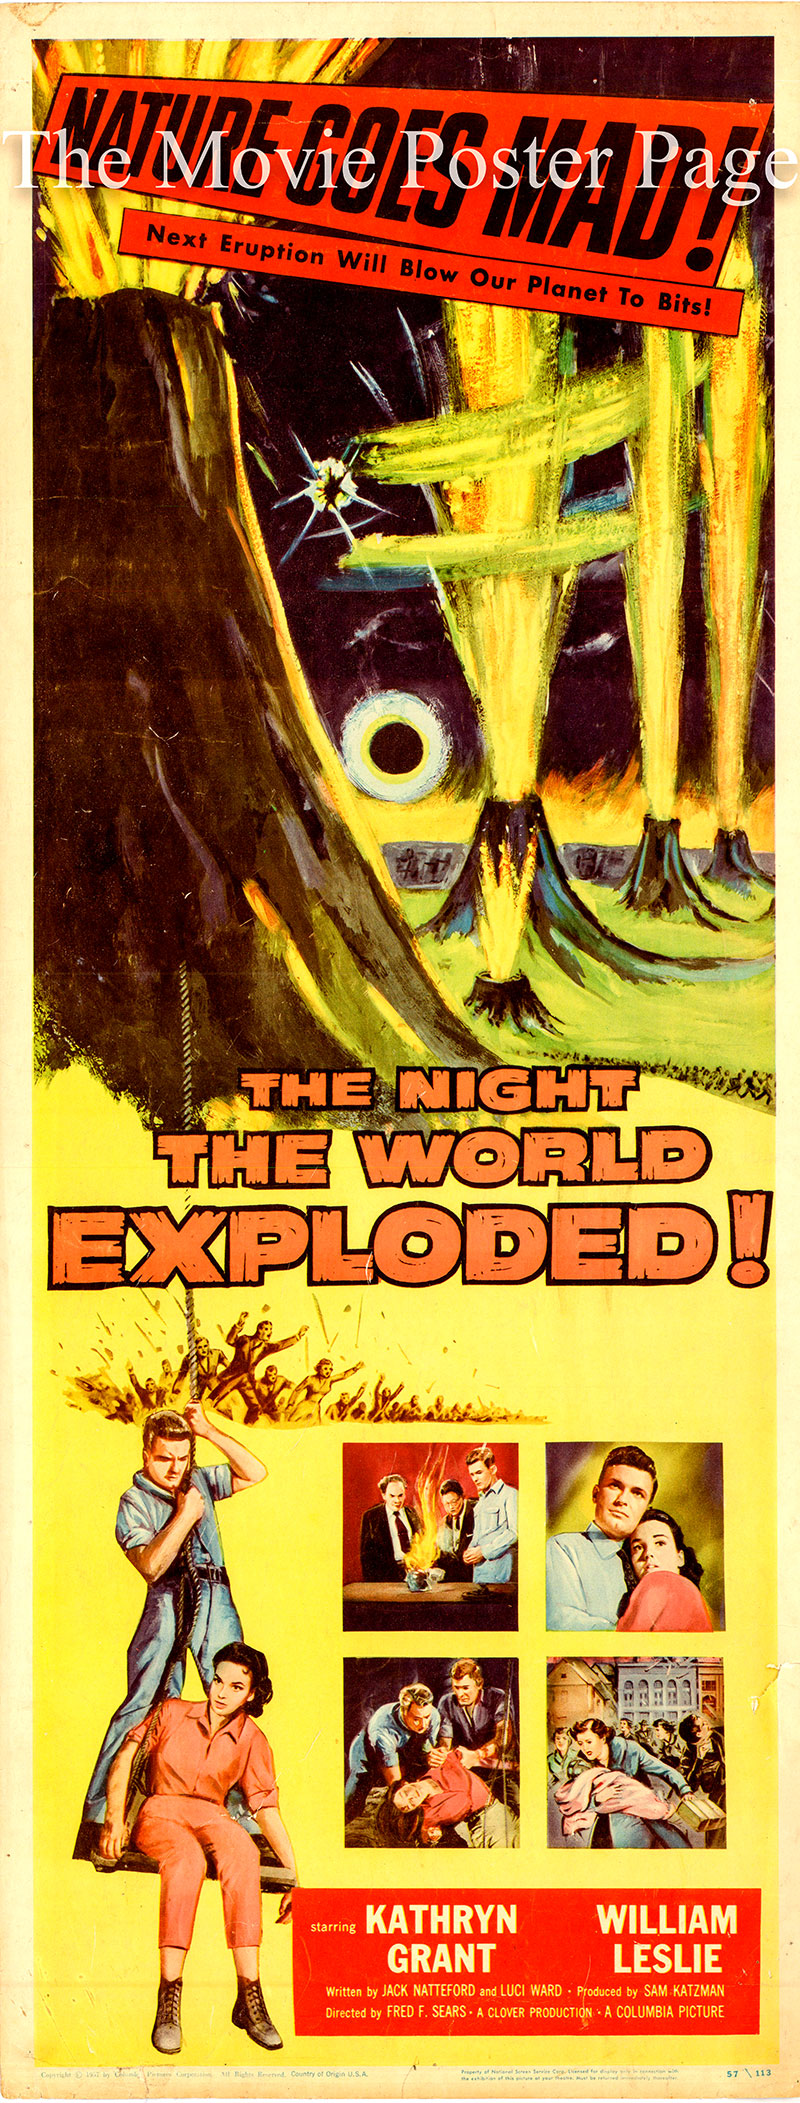 Pictured is a US insert promotional poster for the 1957 Fred. F. Sears film The Night the World Exploded starring Katyryn Grant.